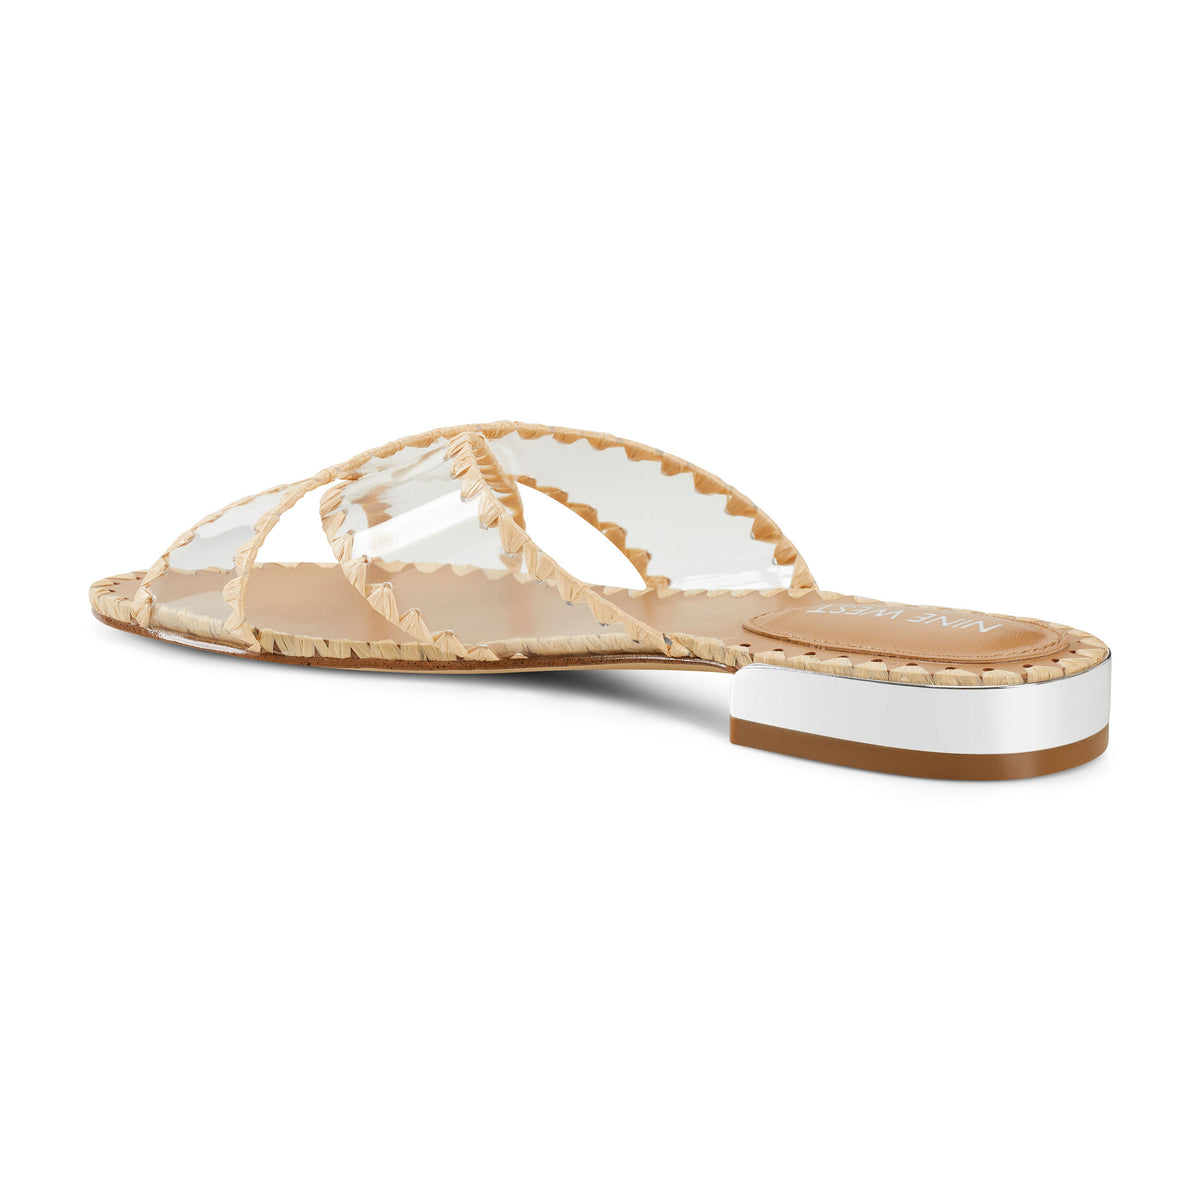 ieni-flat-slide-sandals-in-natural-clear